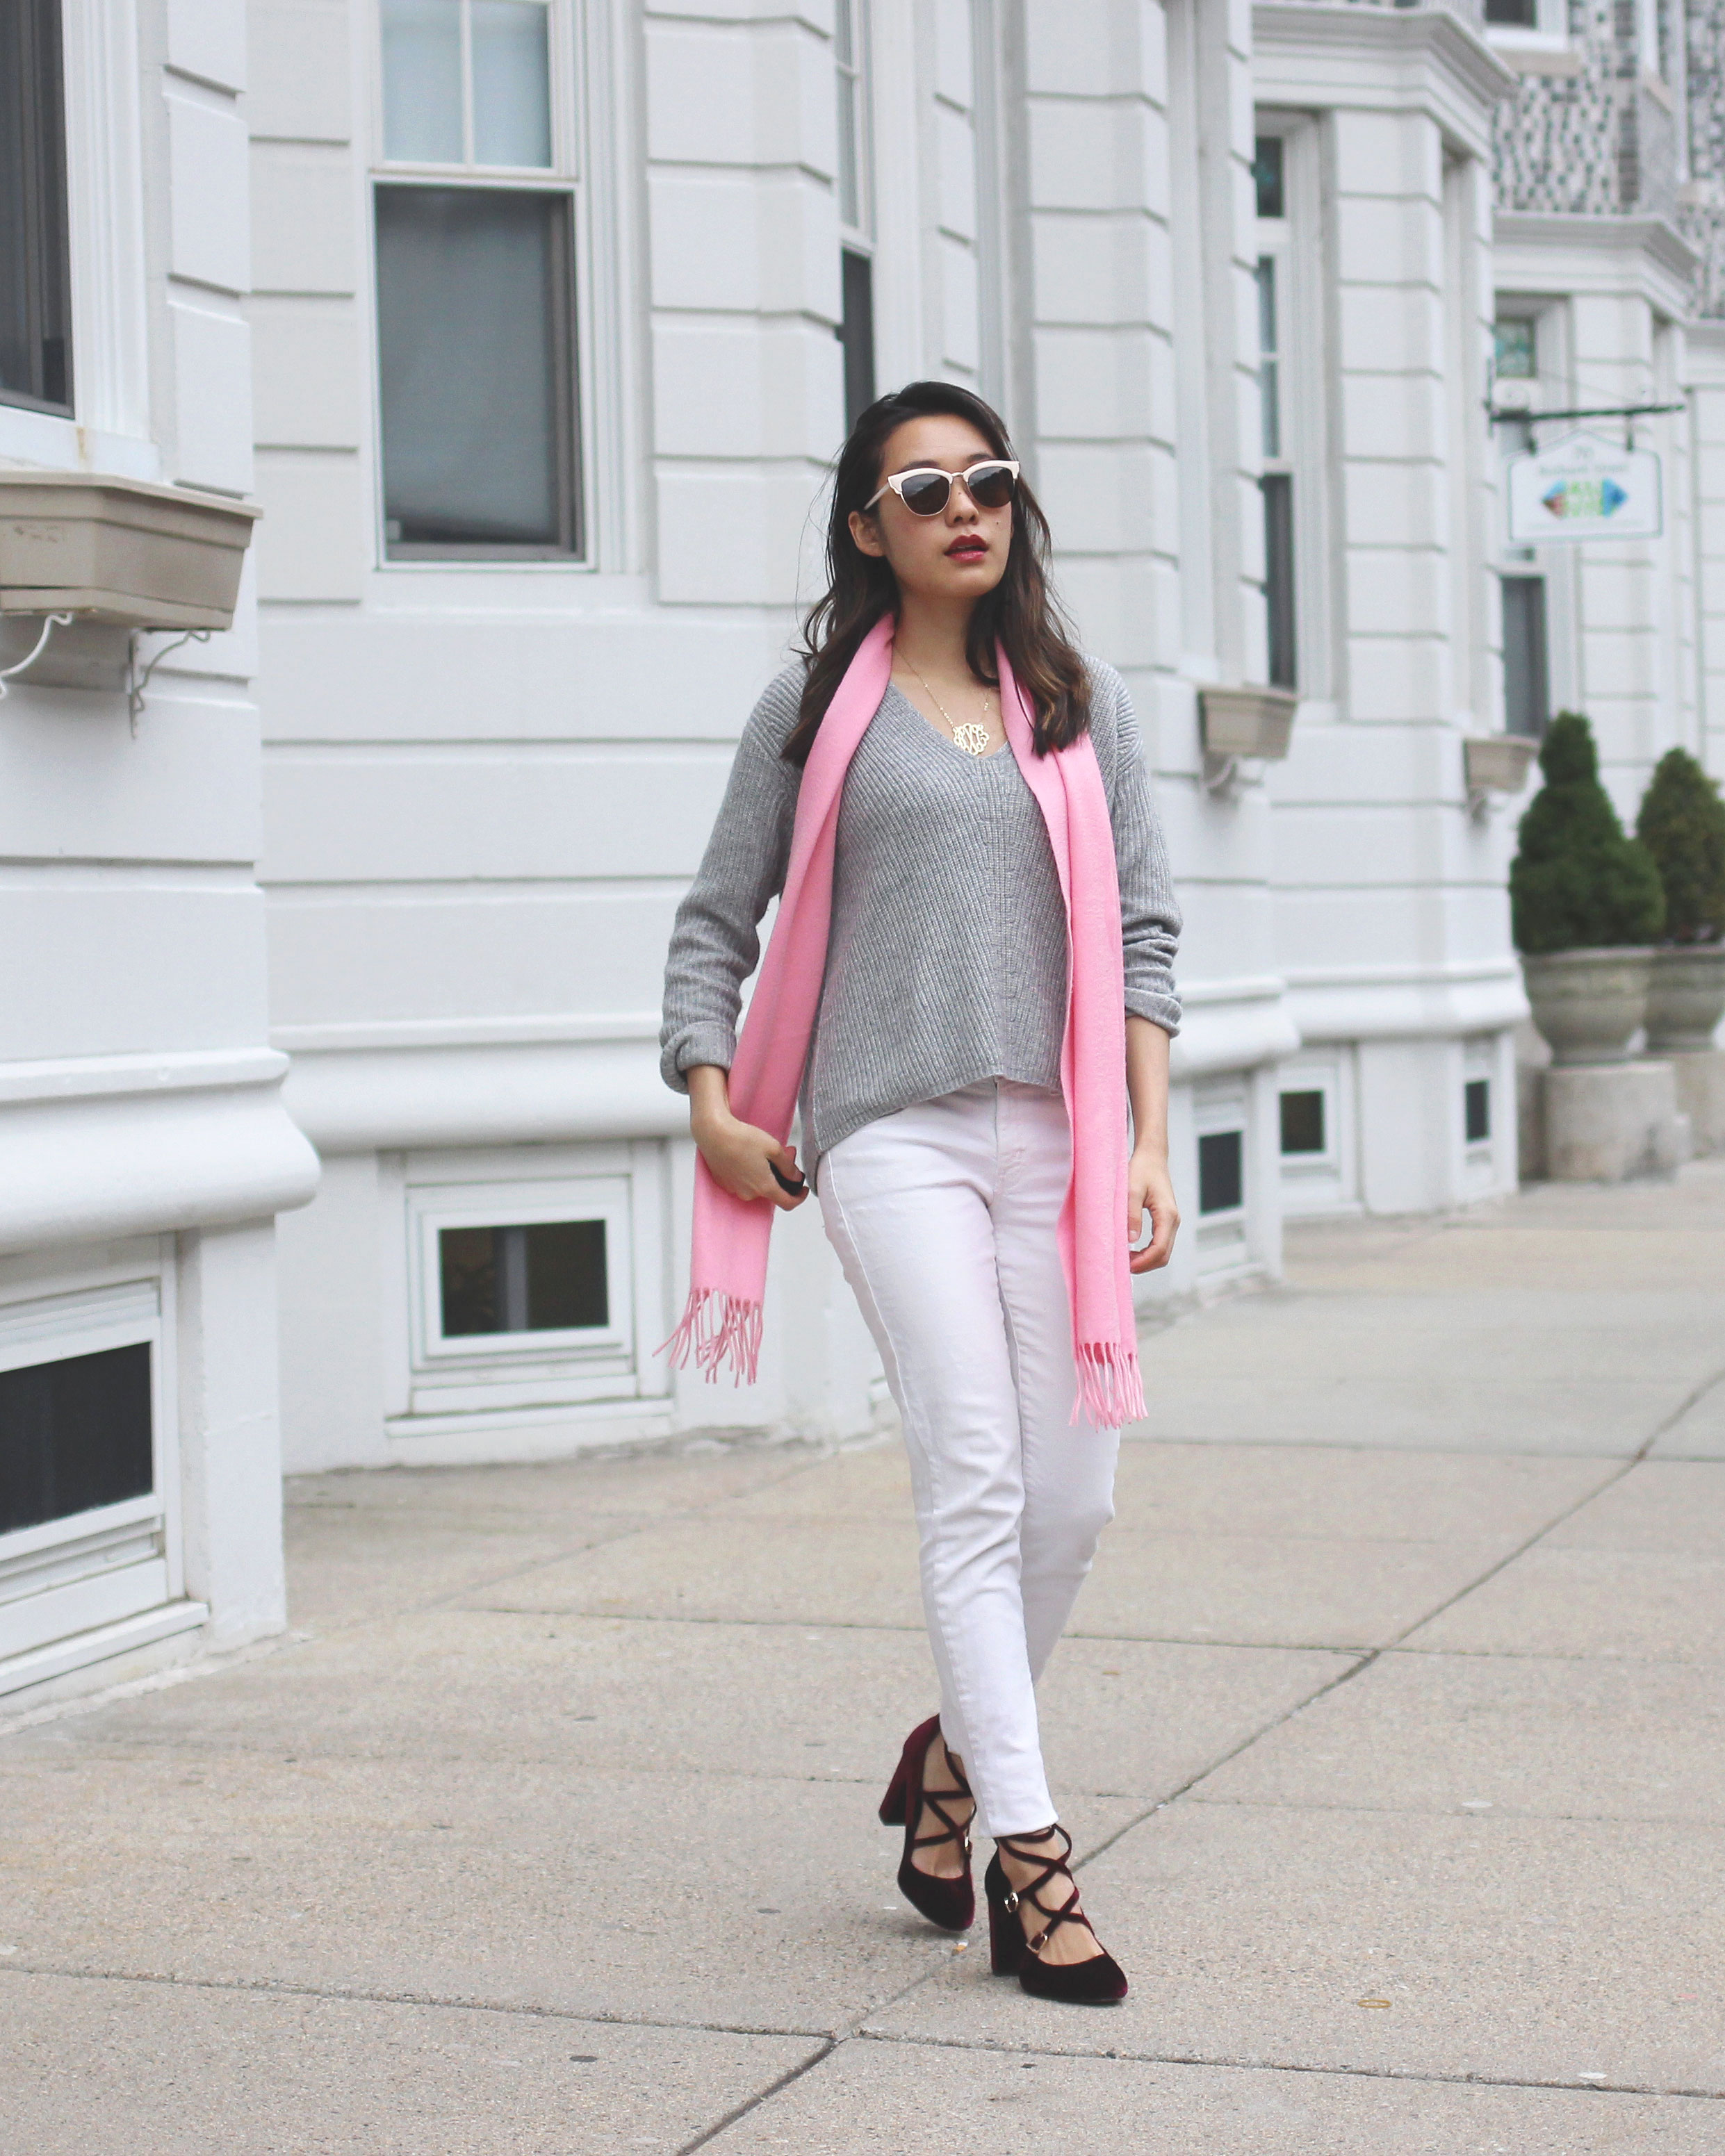 Casual girls' brunch Valentine's Day outfit